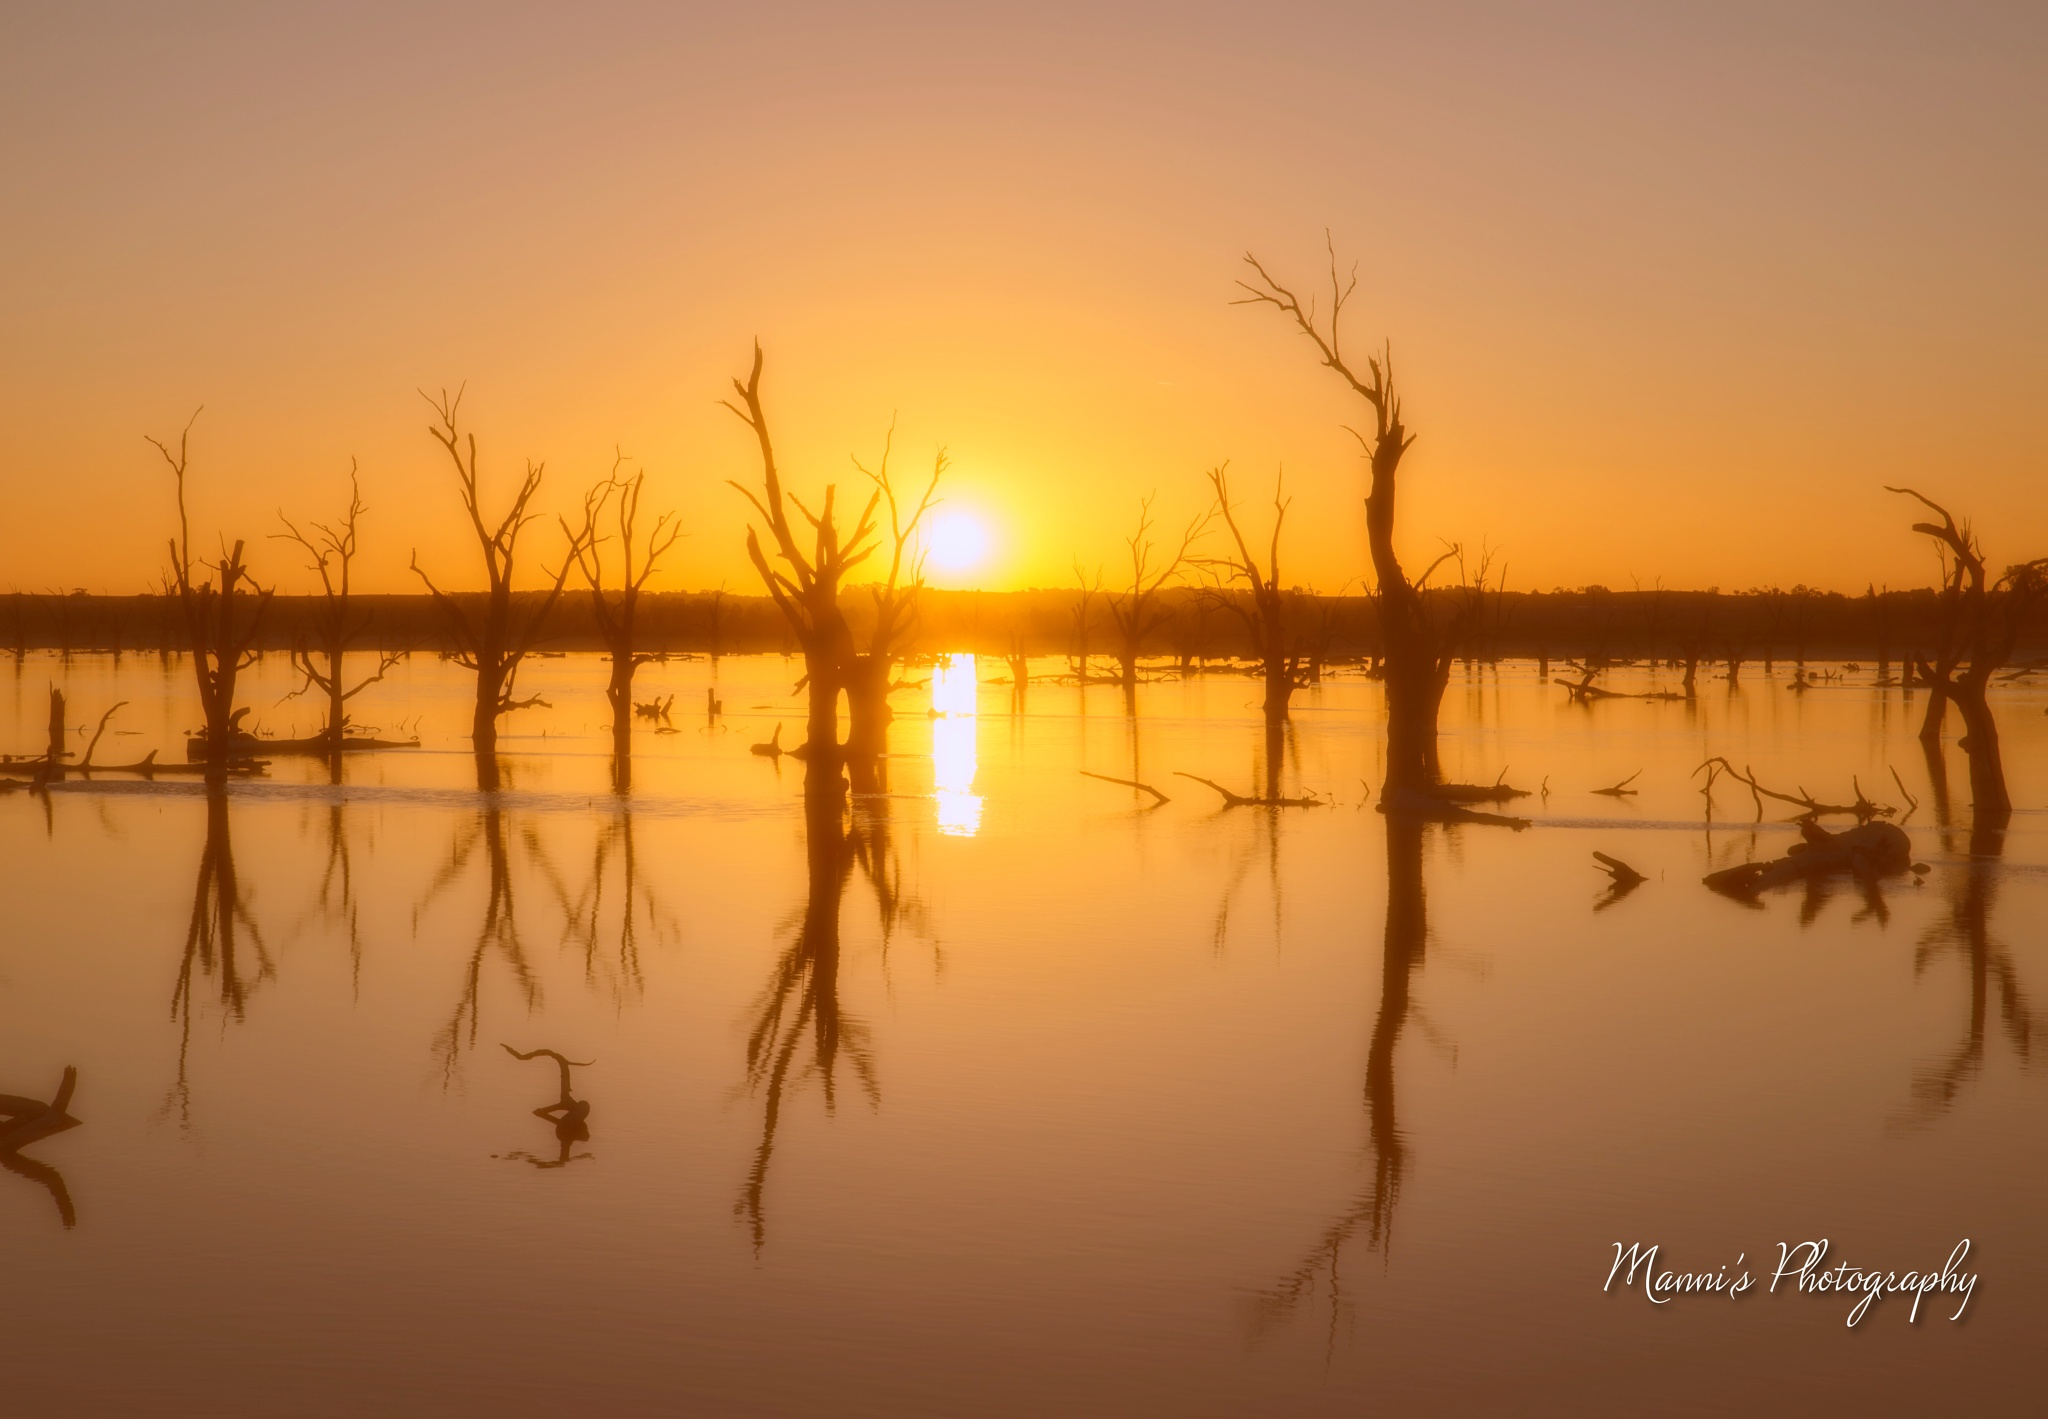 Copdogla Swamp by Manni